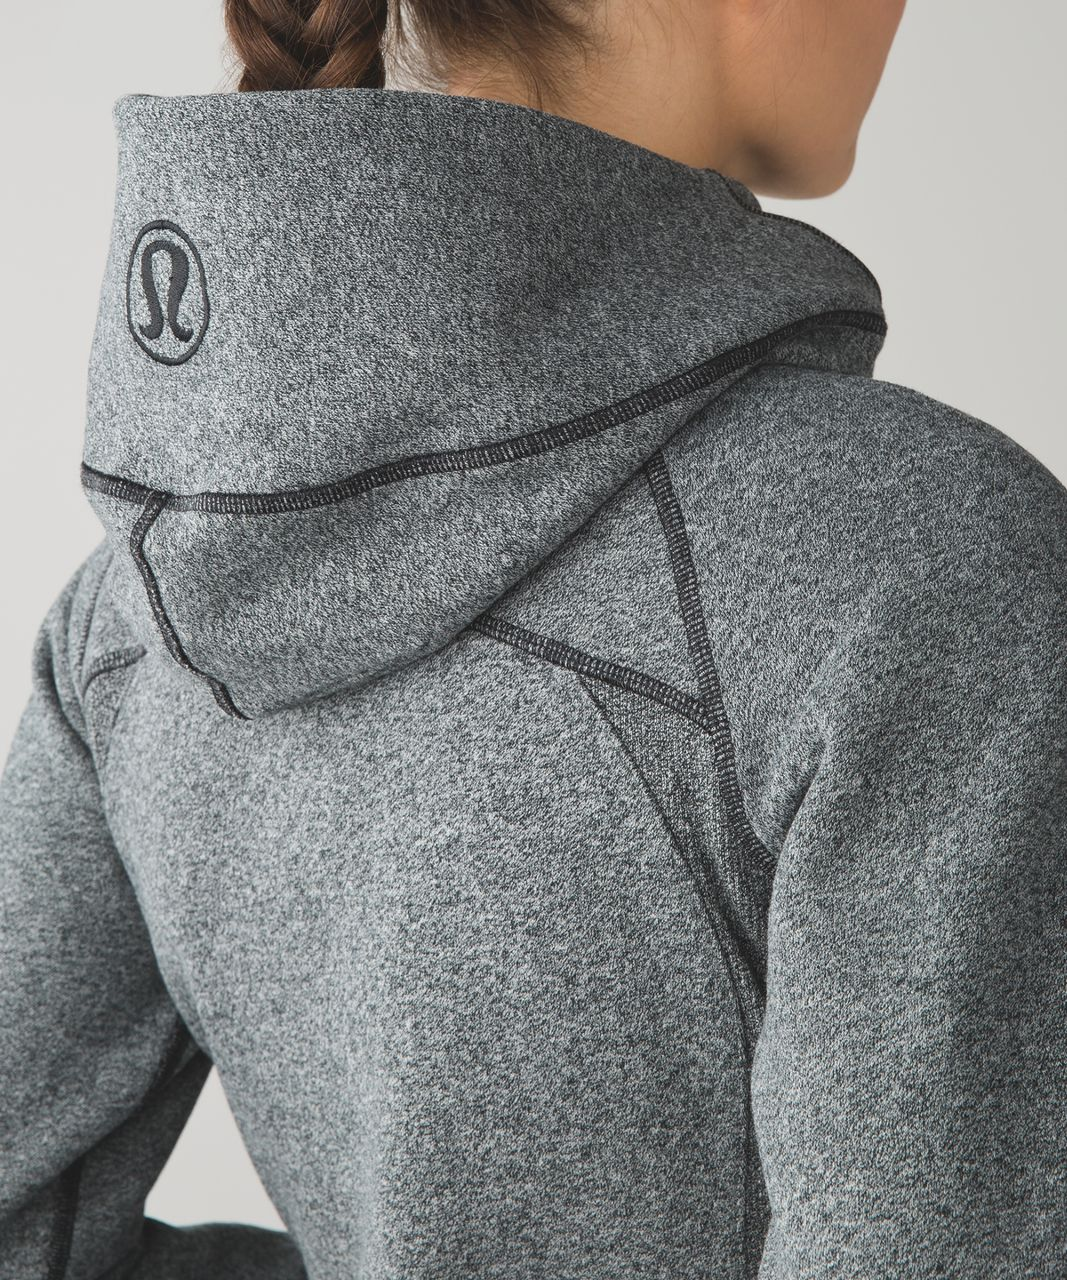 Lululemon Scuba Hoodie *Classic Cotton Fleece - Heathered Speckled Black